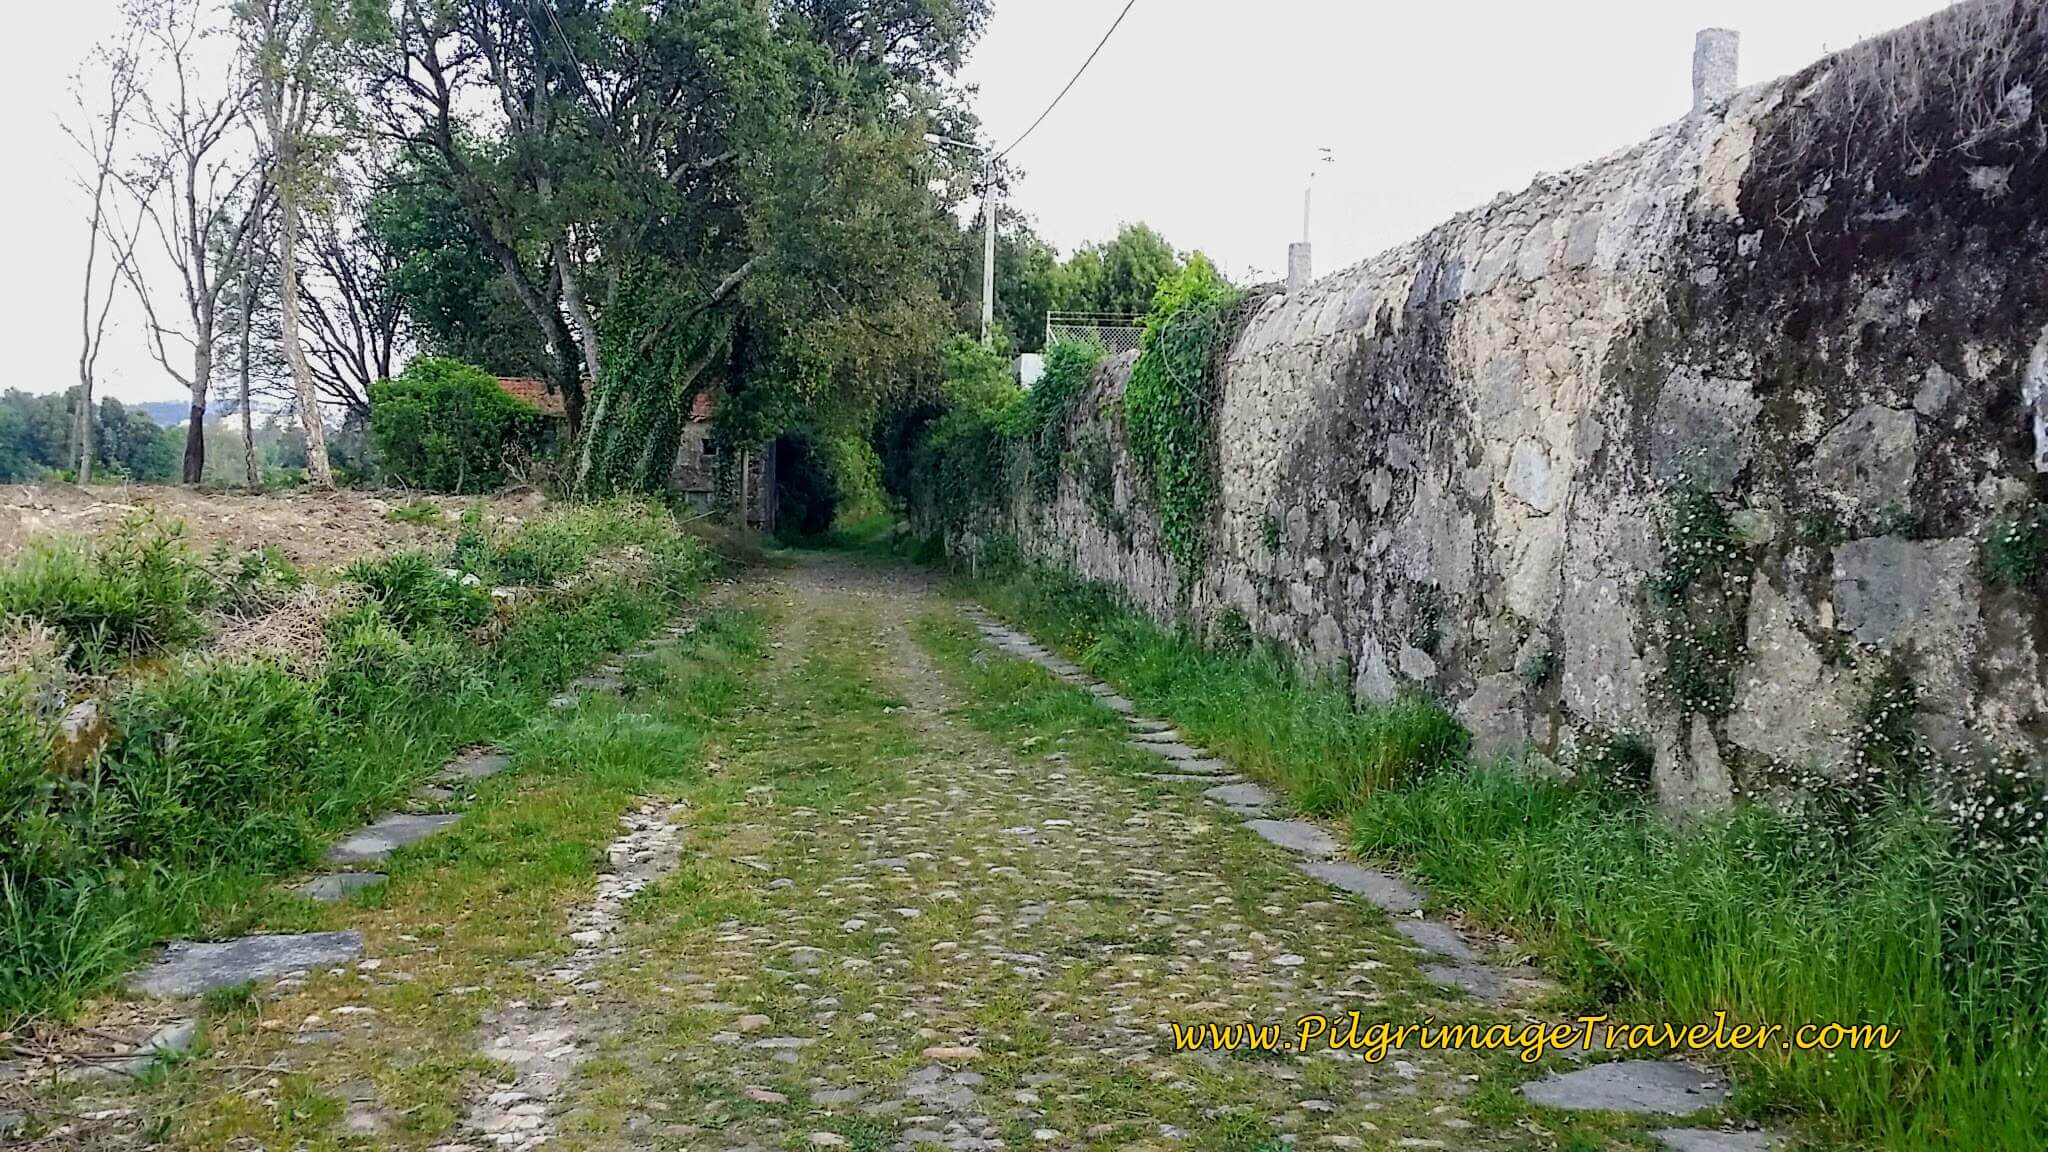 The Antique Roman Road Continues North Toward Porto on day fourteen of the Portuguese Way